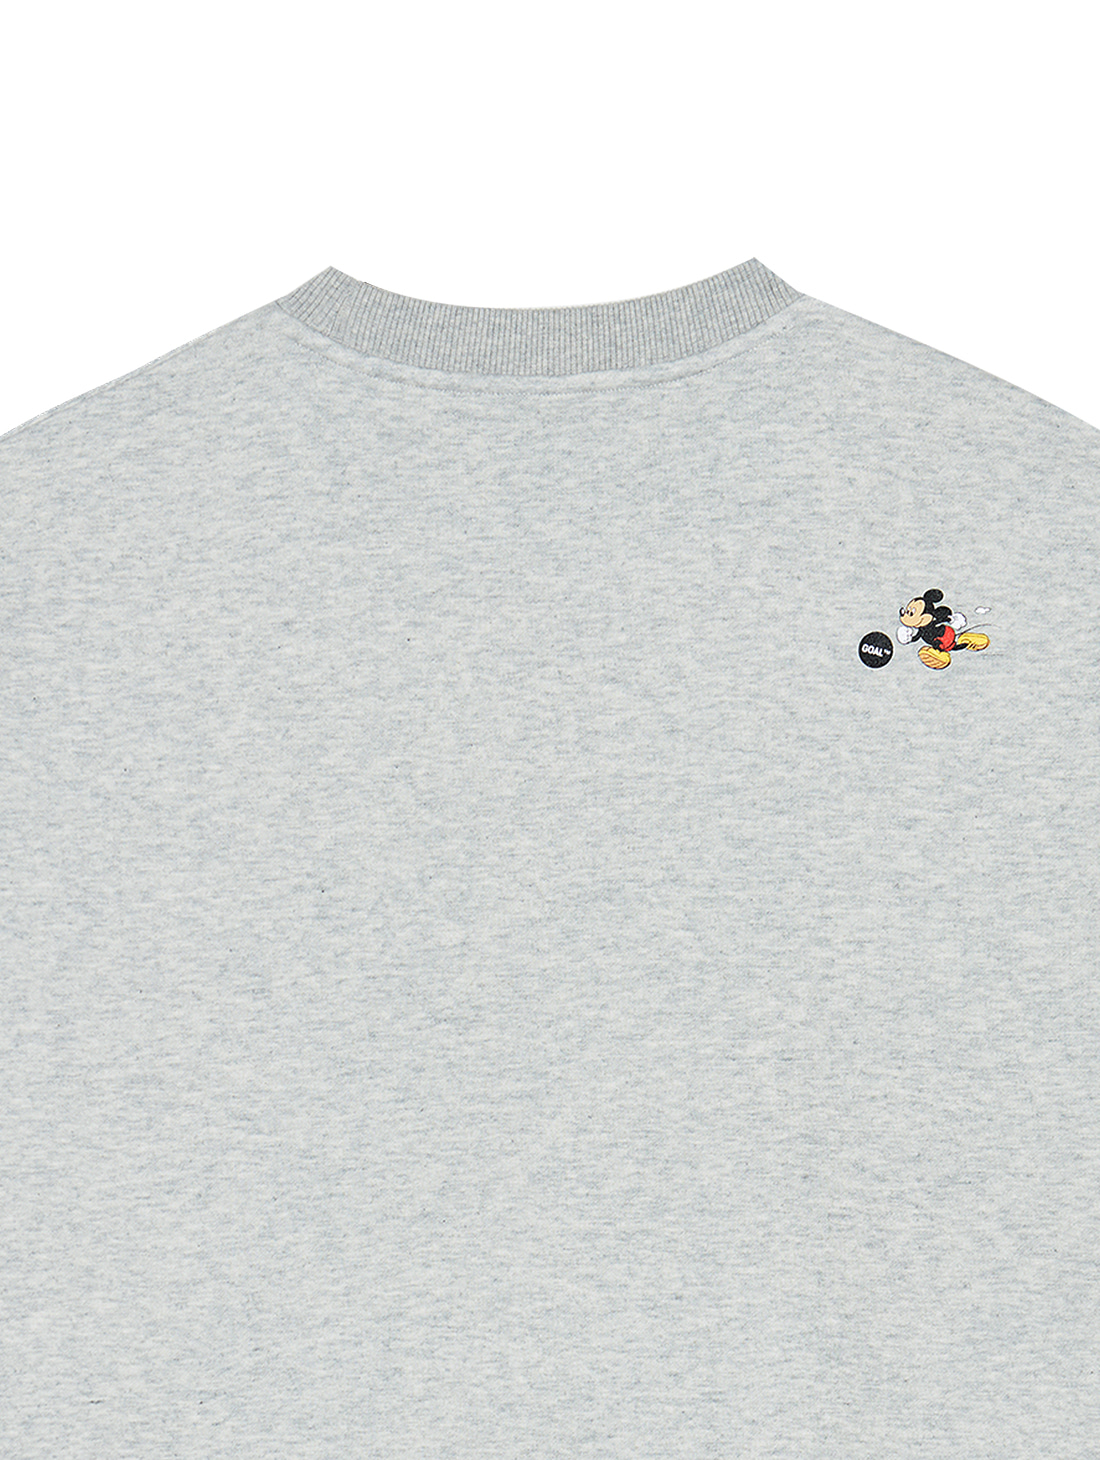 STRIKER MICKEY SWEATSHIRT - GRAY